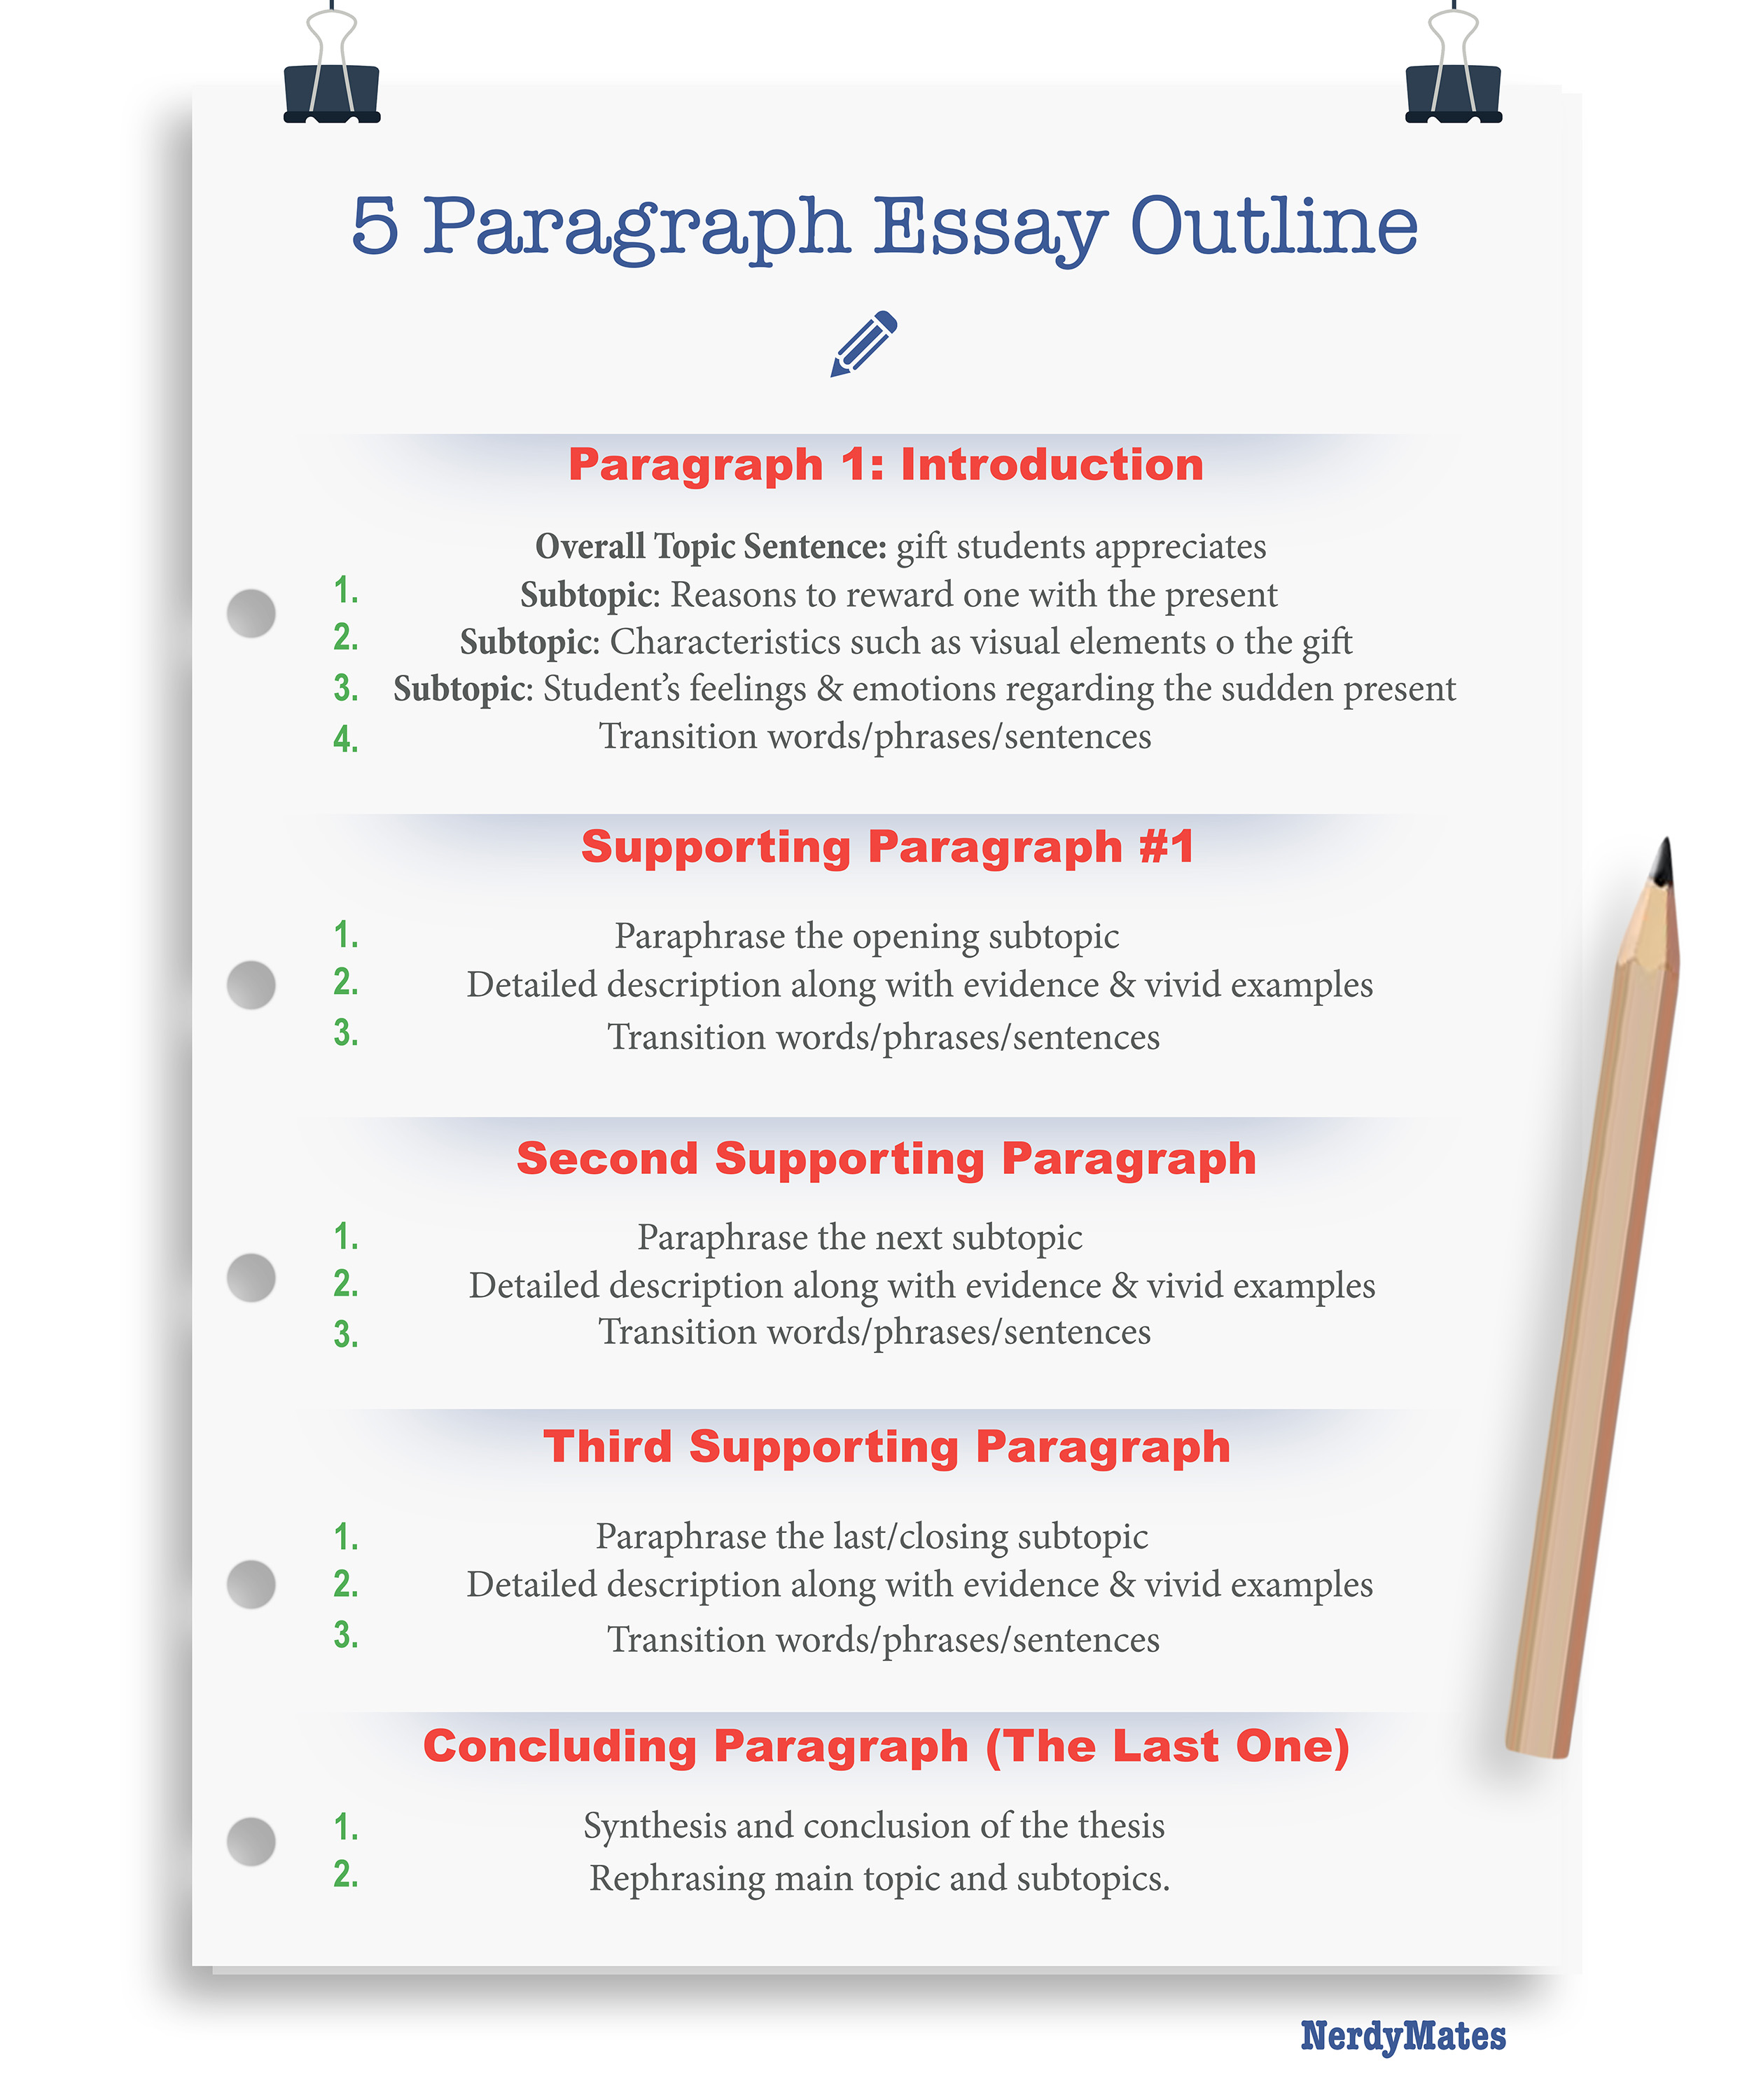 006 Essay Example How To Write Paragraph Writing Help Ou About Yourself Pdf 4th Grade Ppt Outline Do You Middle School In Minutes Unbelievable A 5 Mla Format 30 Full